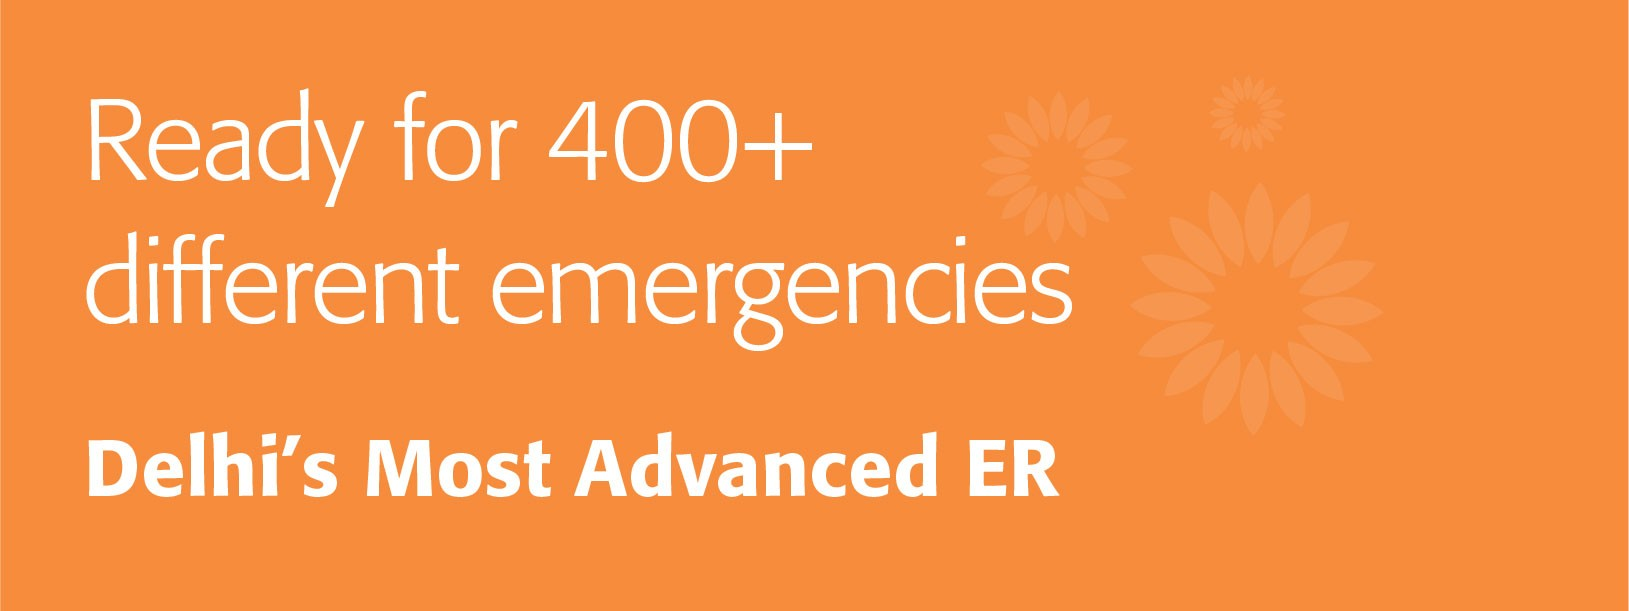 Ready for 400+ different emergencies. Delhi's most advanced ER